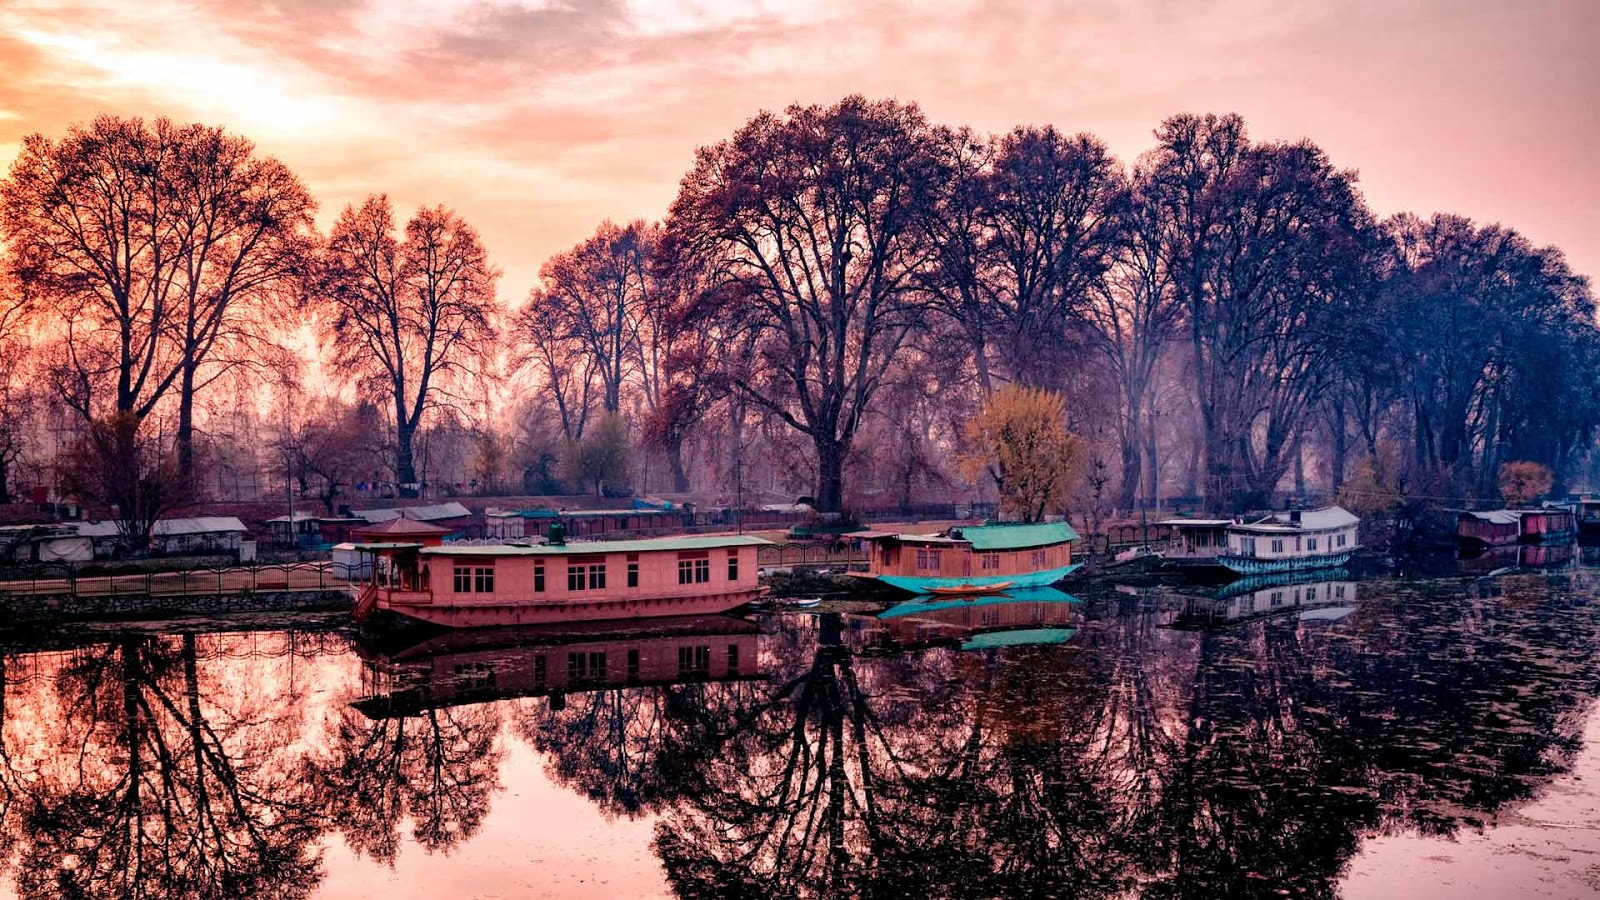 Houseboats on bank of the Jhelum River, India